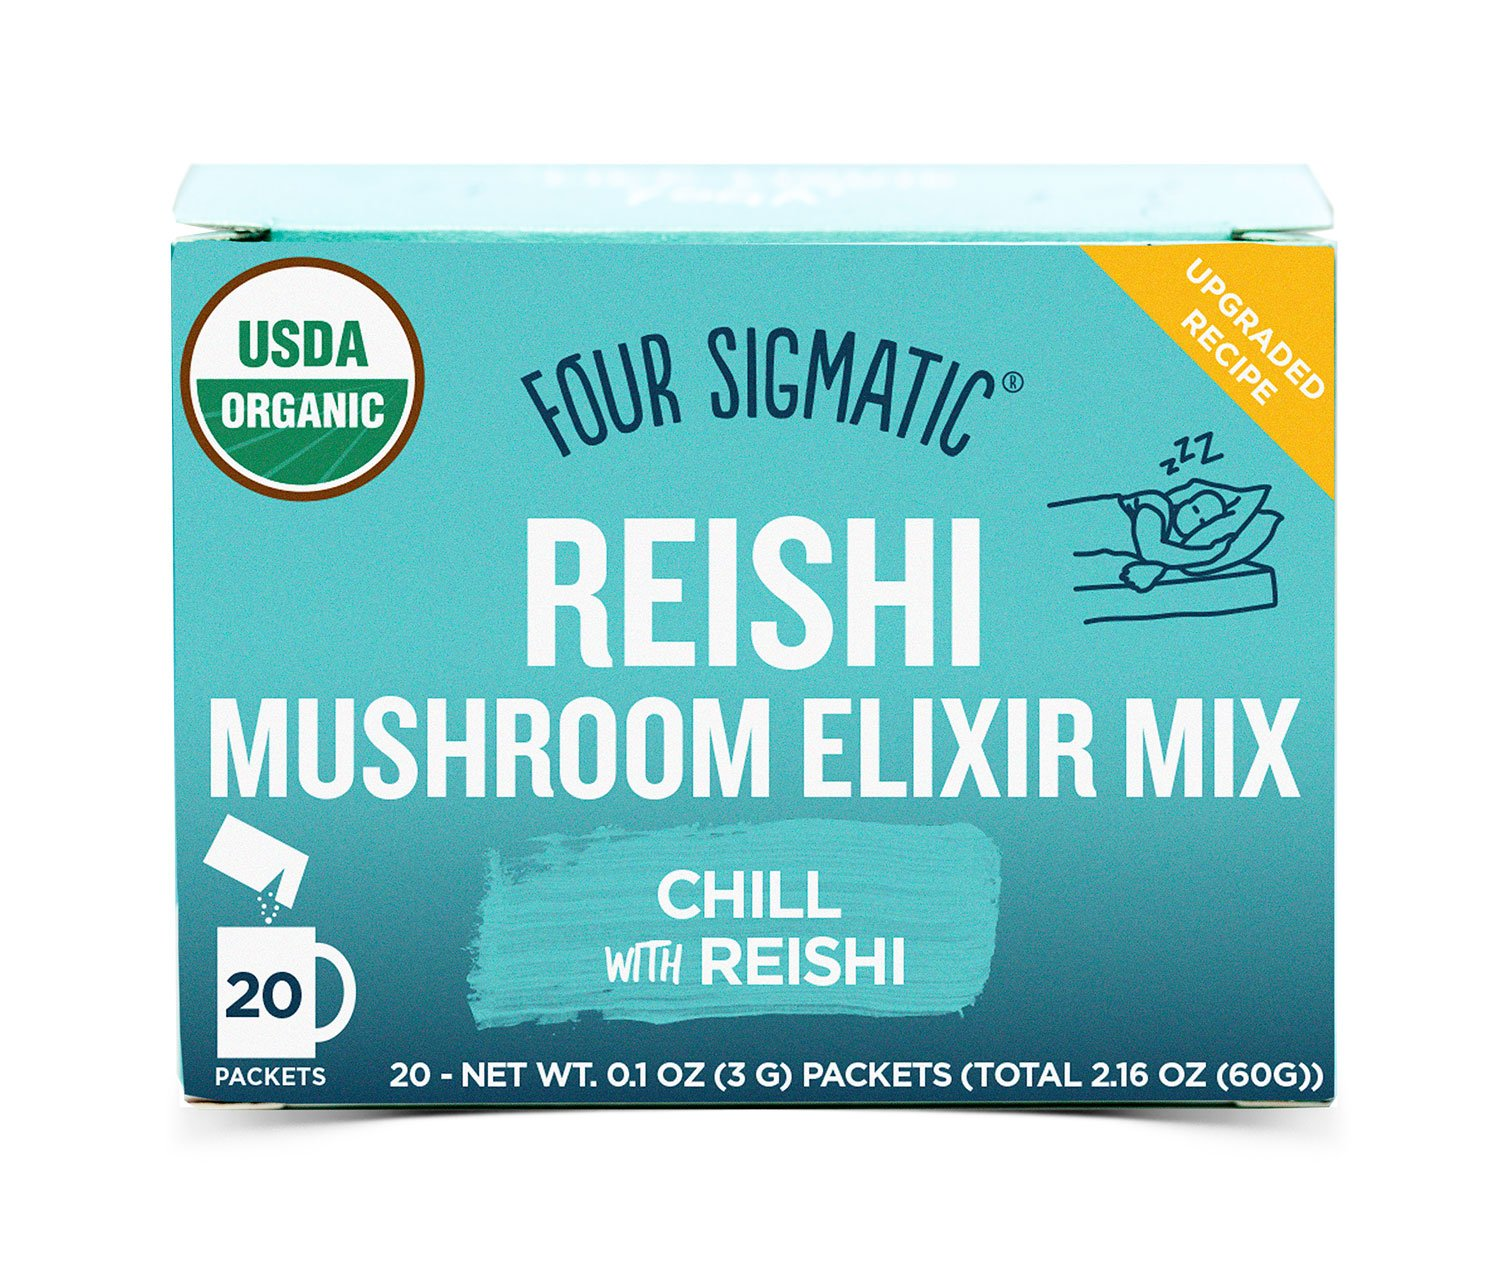 Four Sigmatic Reishi Mushroom Elixir, USDA Organic, chill and sleep, Vegan, Paleo, 20 Count